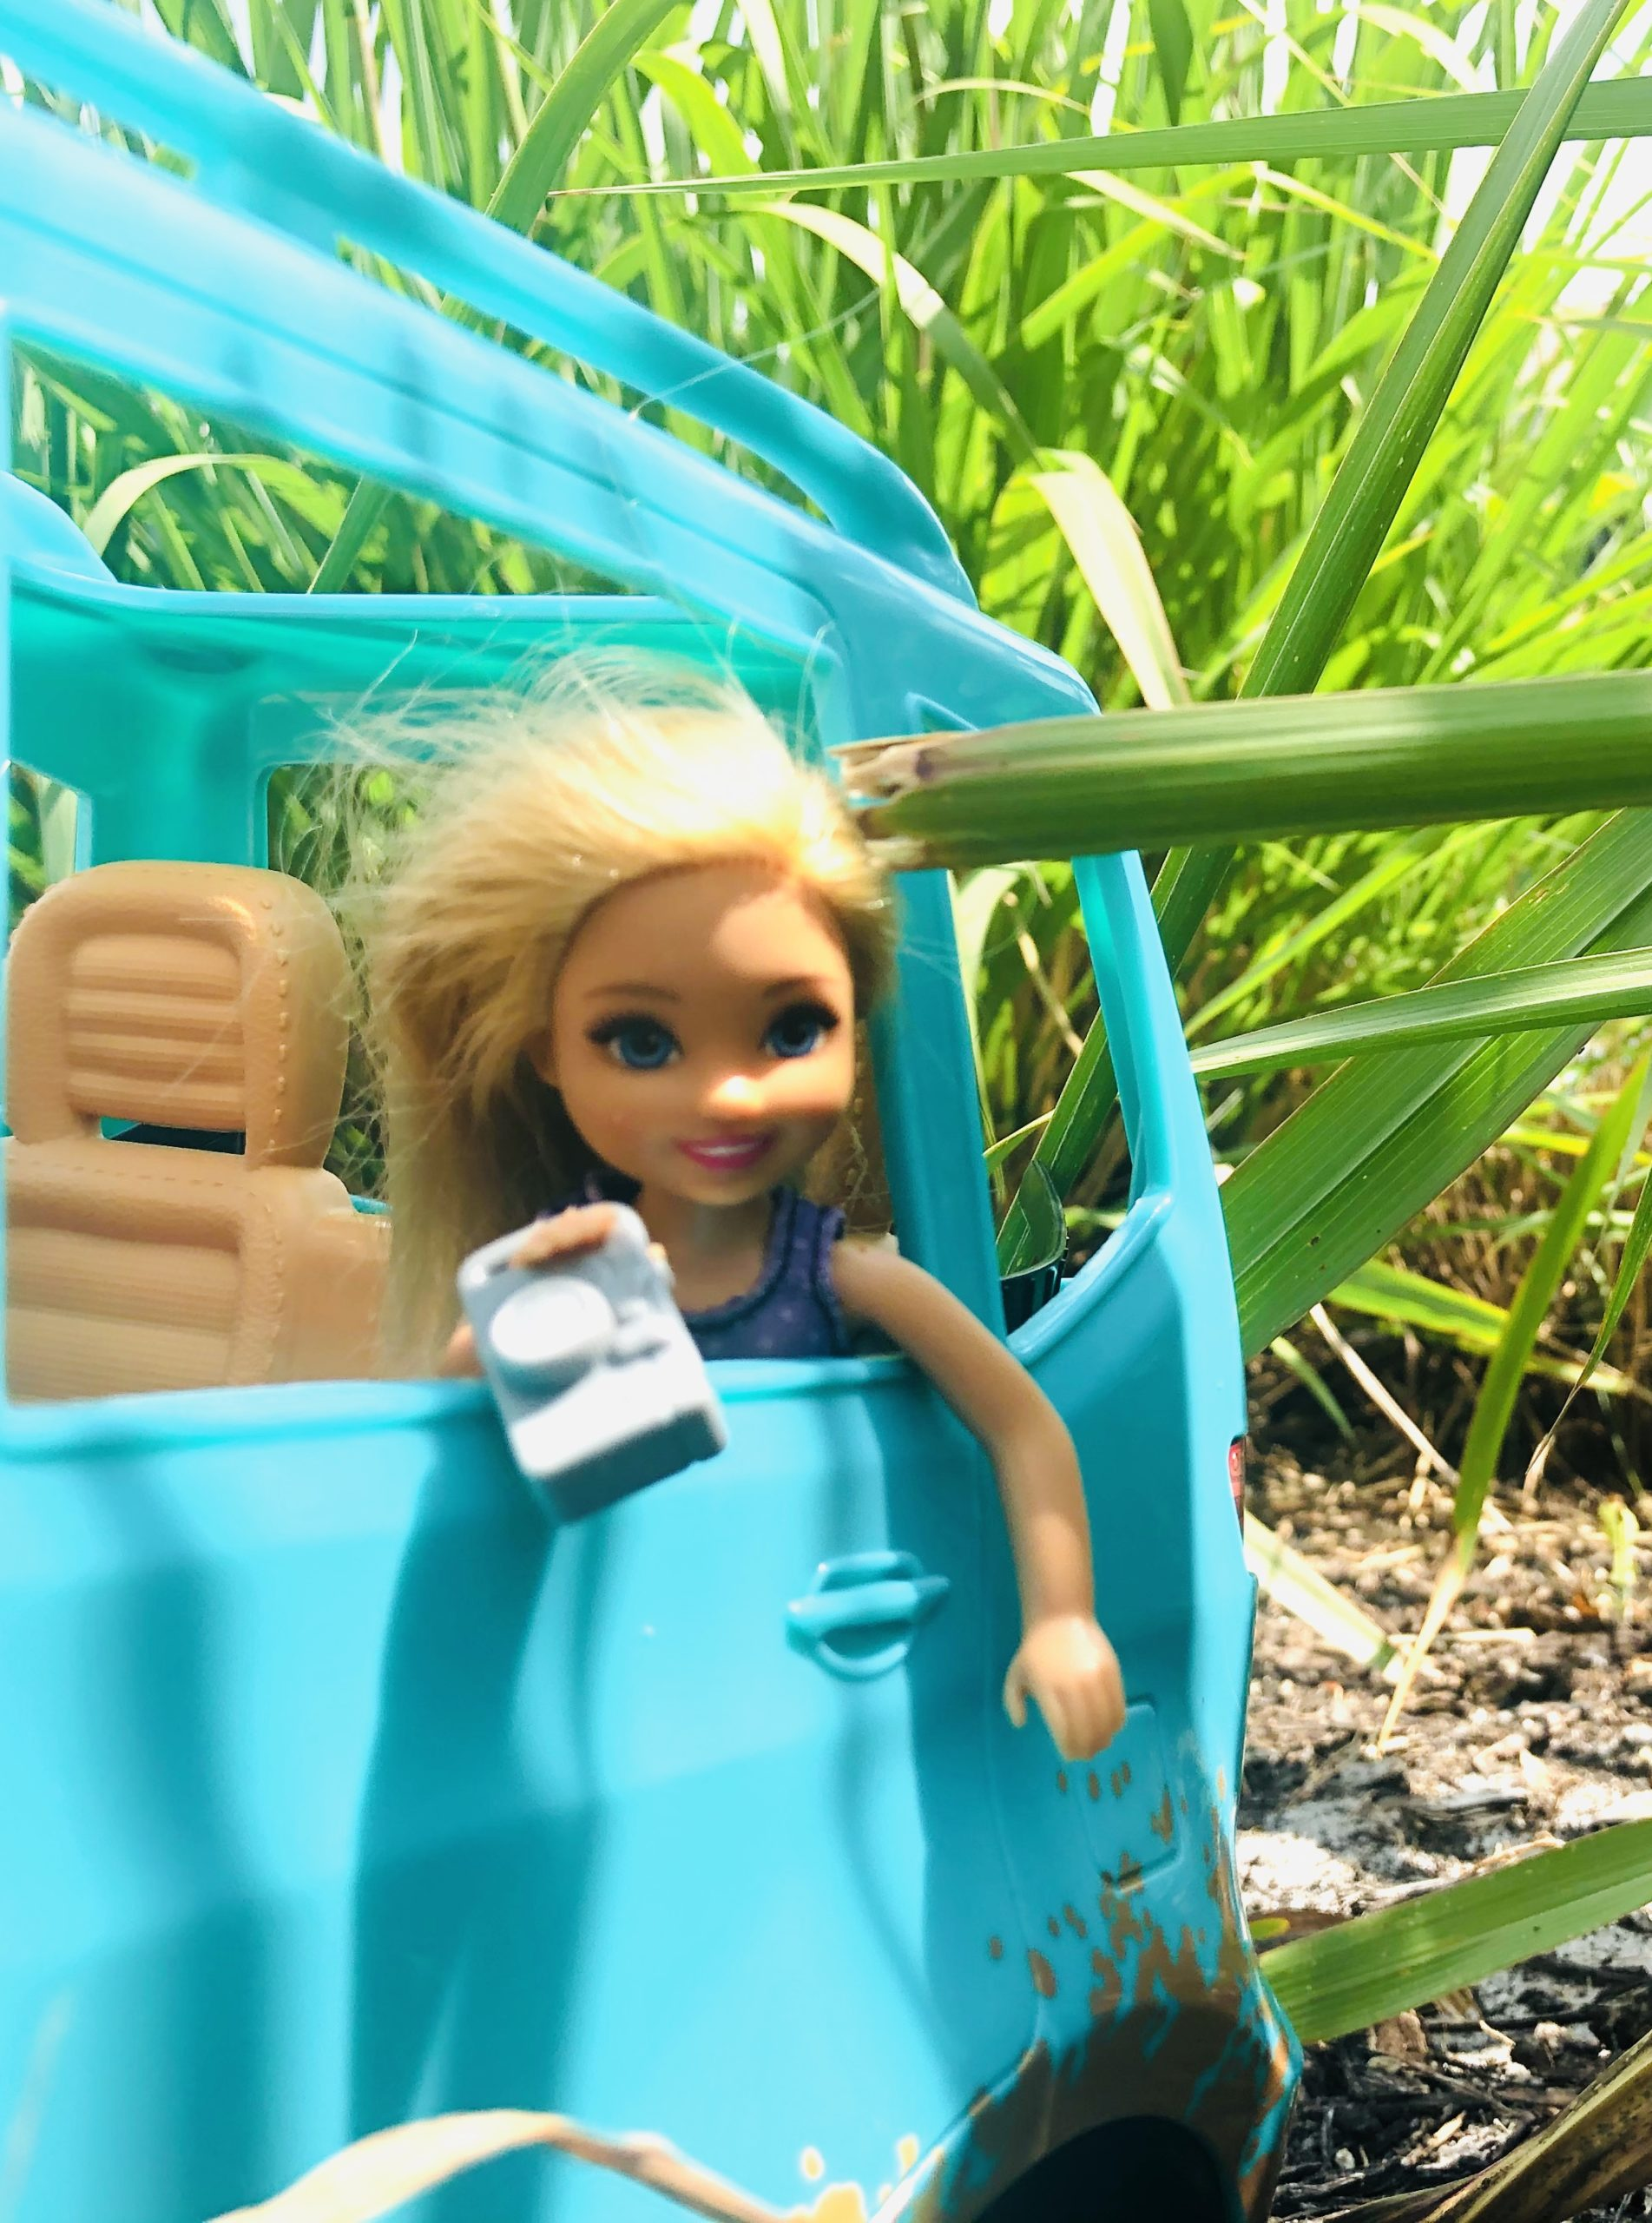 Chelsea doll hanging out the back window of the teal Barbie Jeep taking pictures of the scenery.